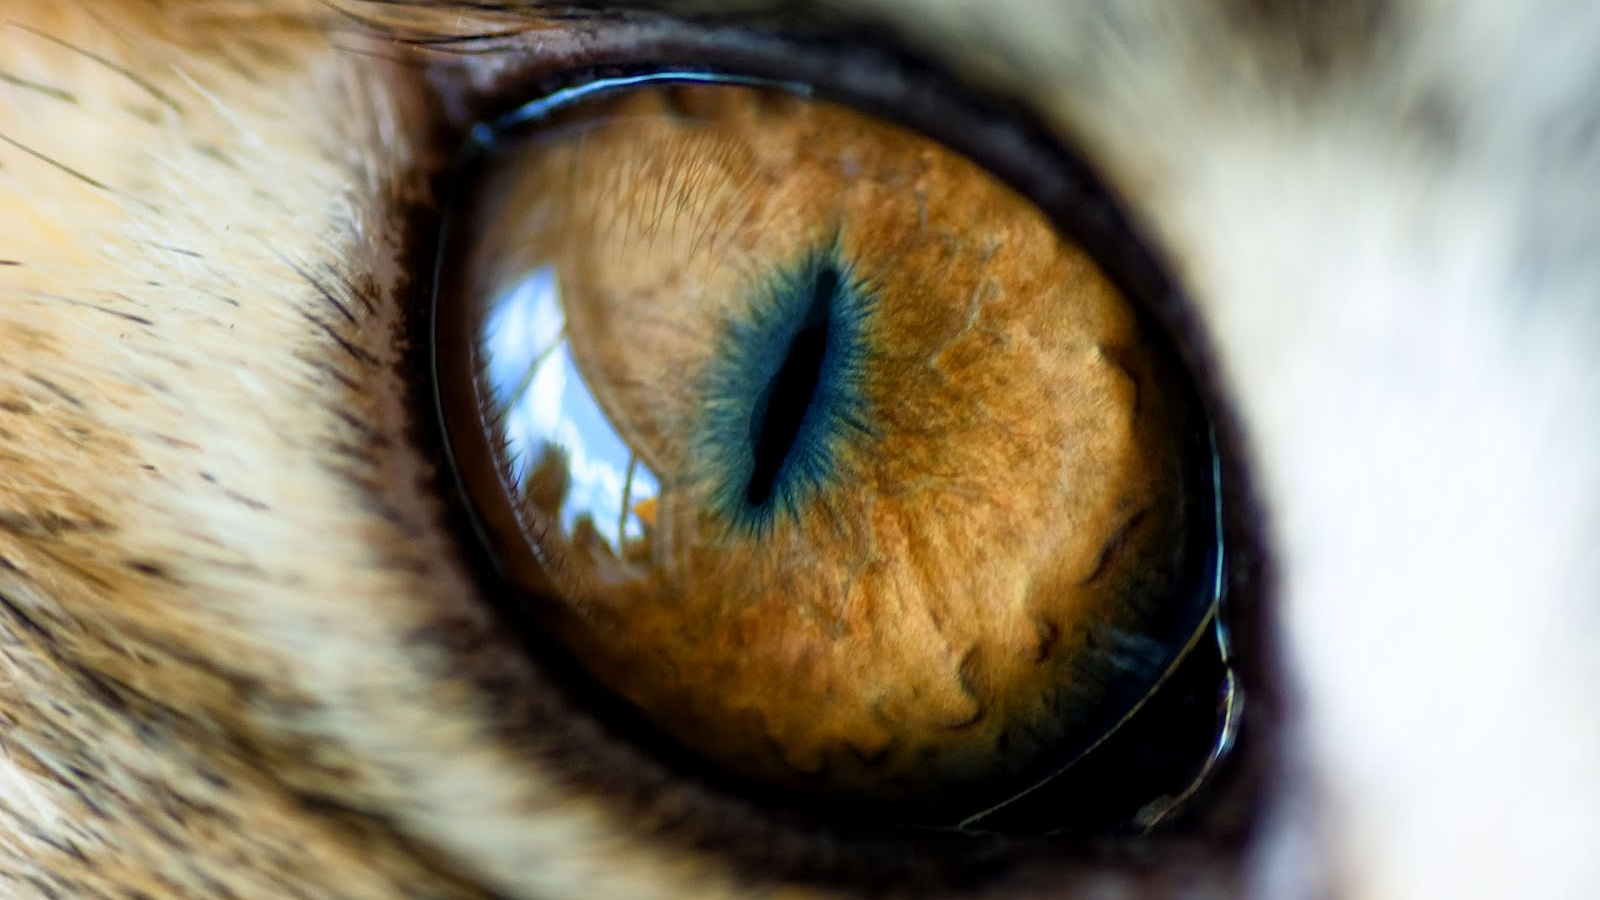 Free Download Wallpapers Animal Eye Of The Tiger 1600x1000 For